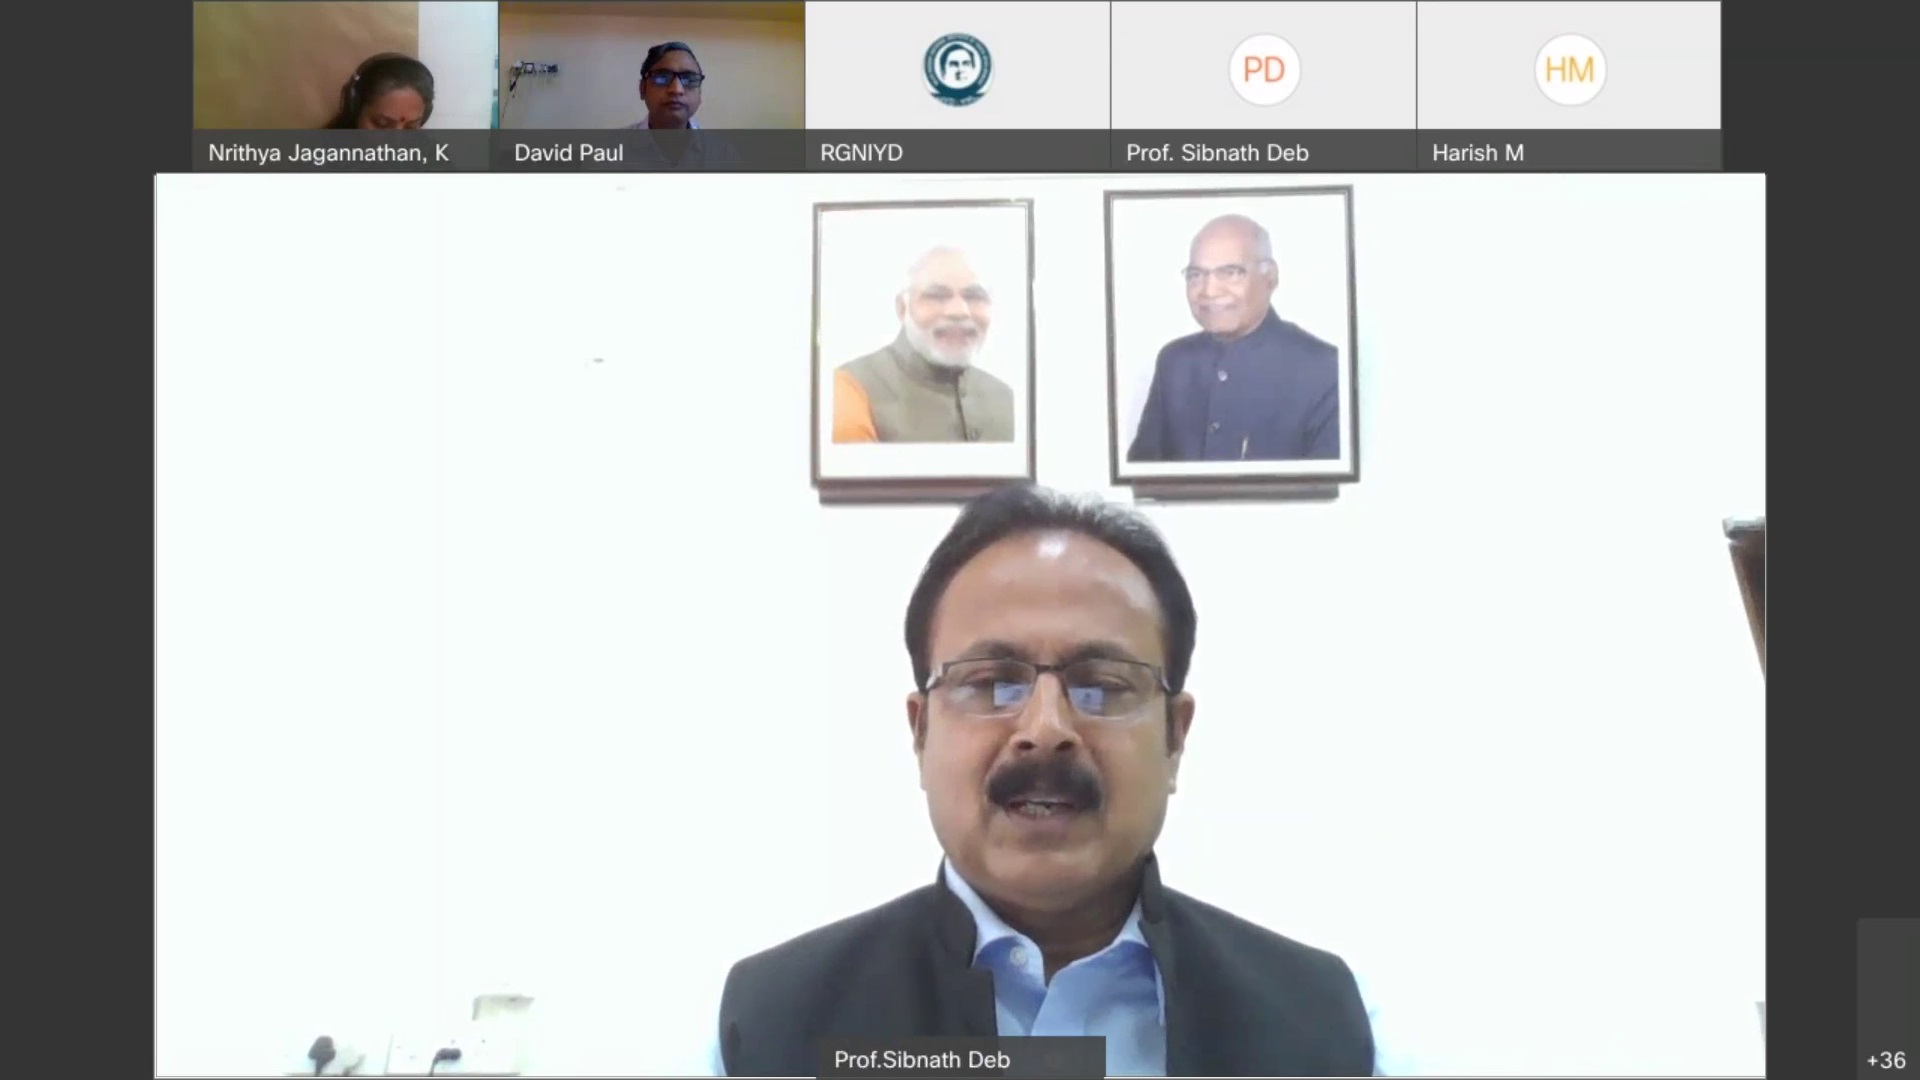 Prof. Sibnath Deb, Director, RGNIYD, Ministry of Youth Affairs and Sports, Government of India delivering Presidential Address in the 7th International Day of Yoga – 2021 on June 21, 2021